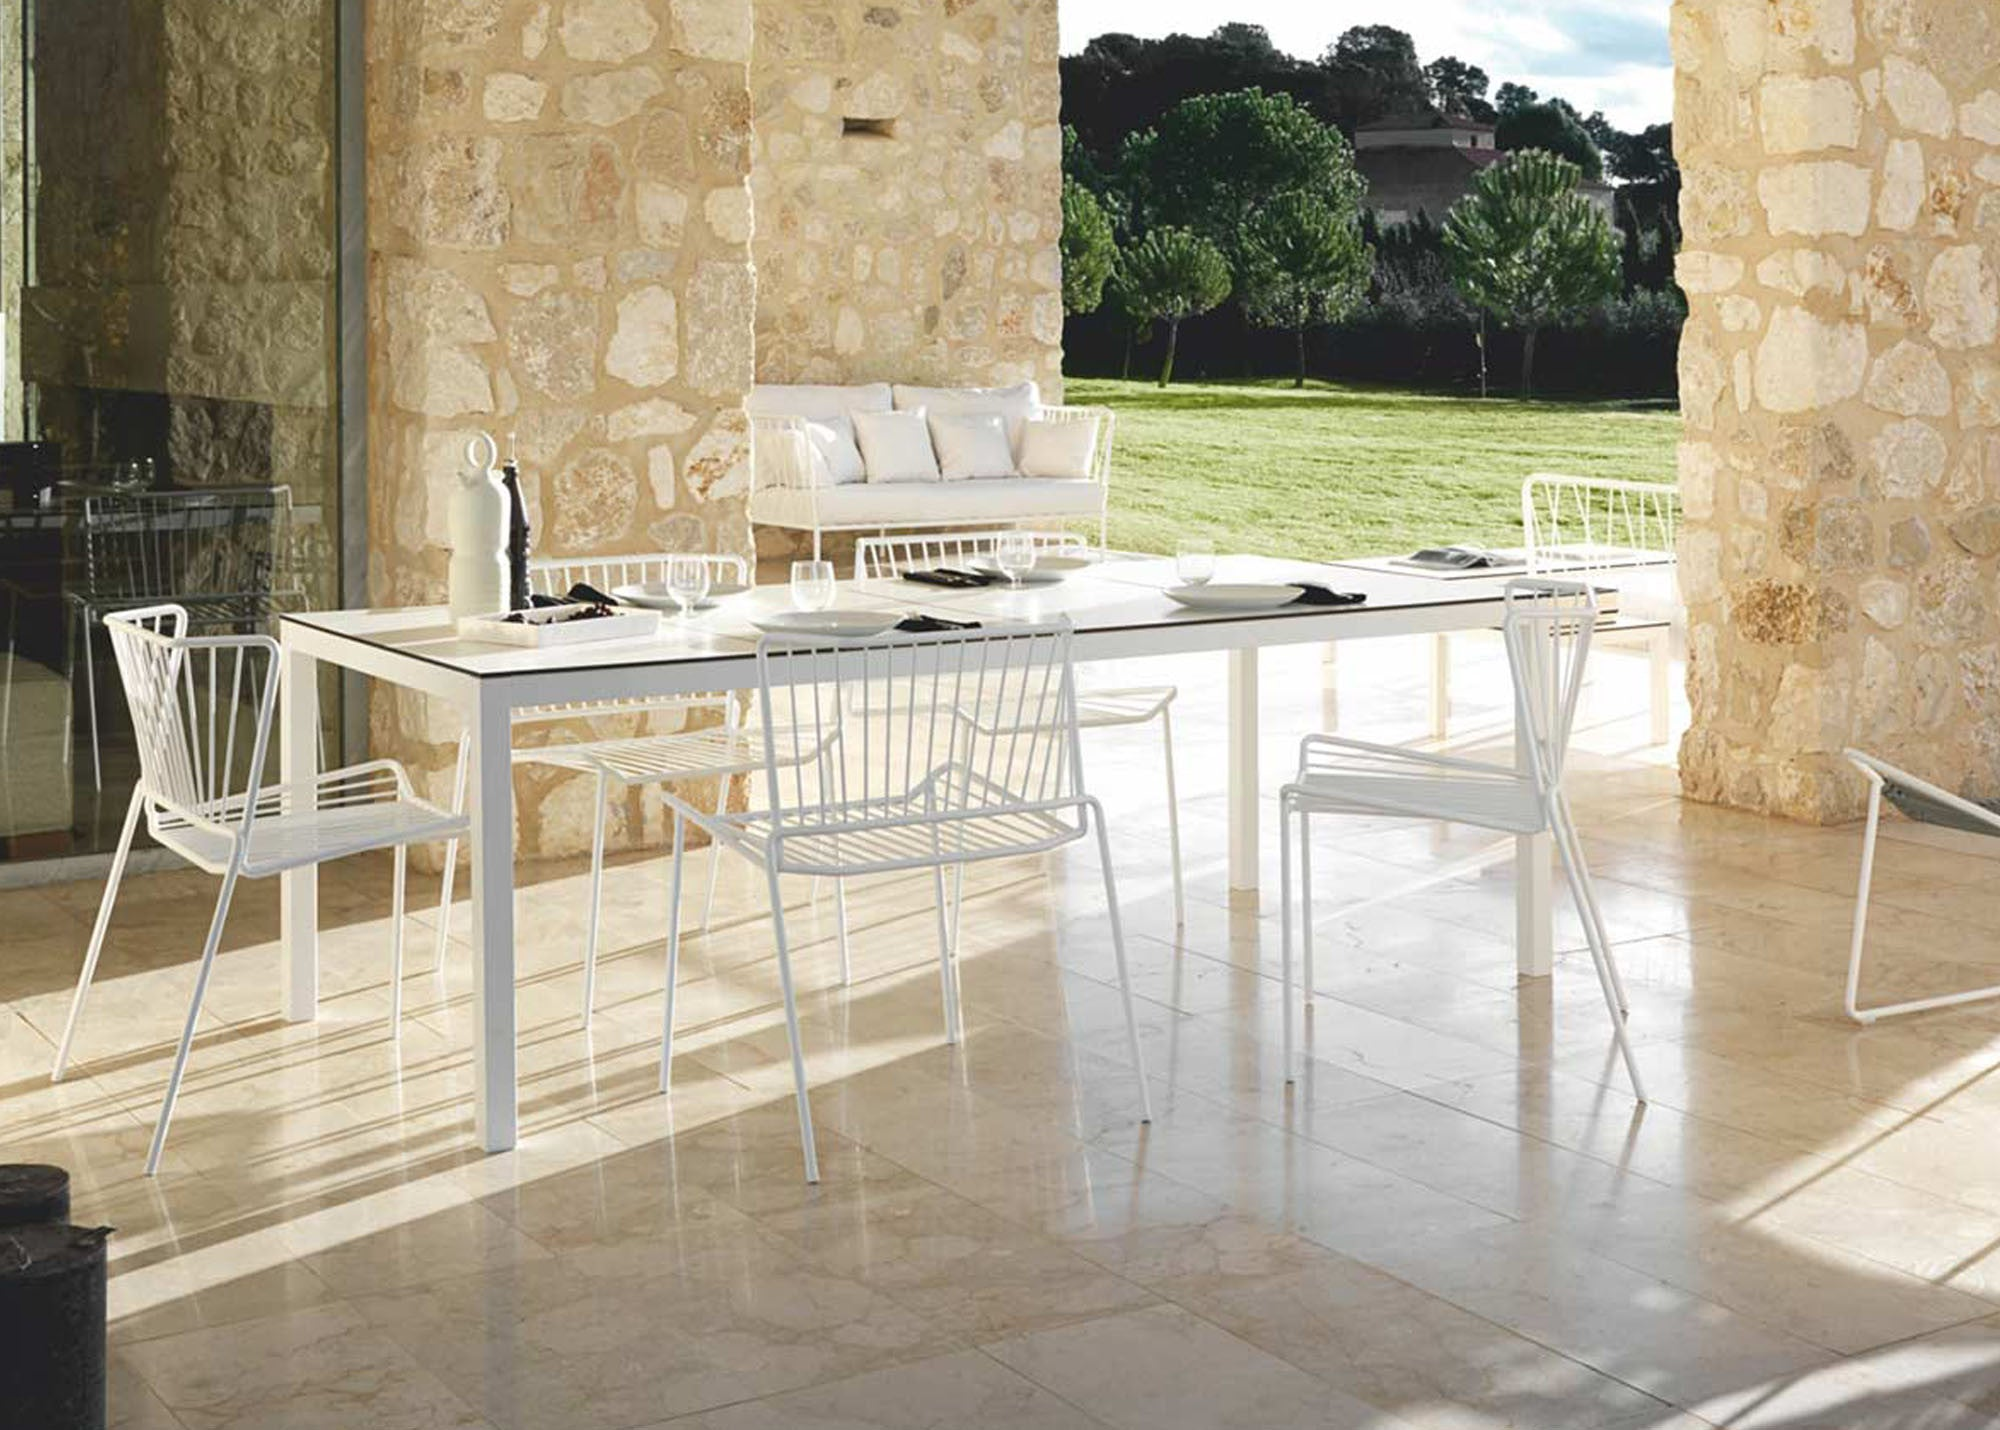 Extending Outdoor Dining Table Exoutdoor Dining Table Fixed Extending Hunter Valley Design